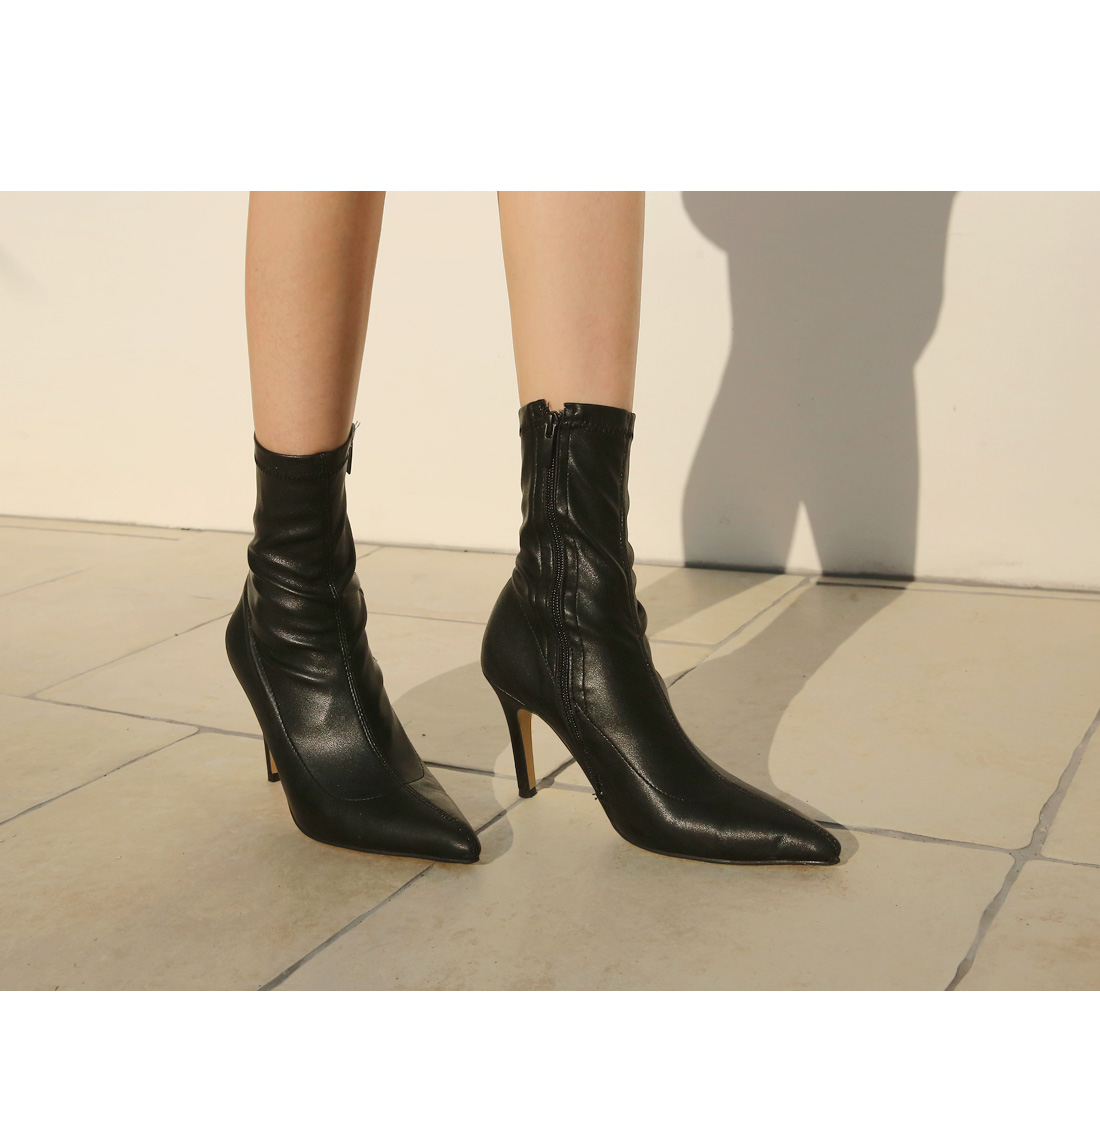 SLIM SPAN STILETTO ANKLE BOOTS